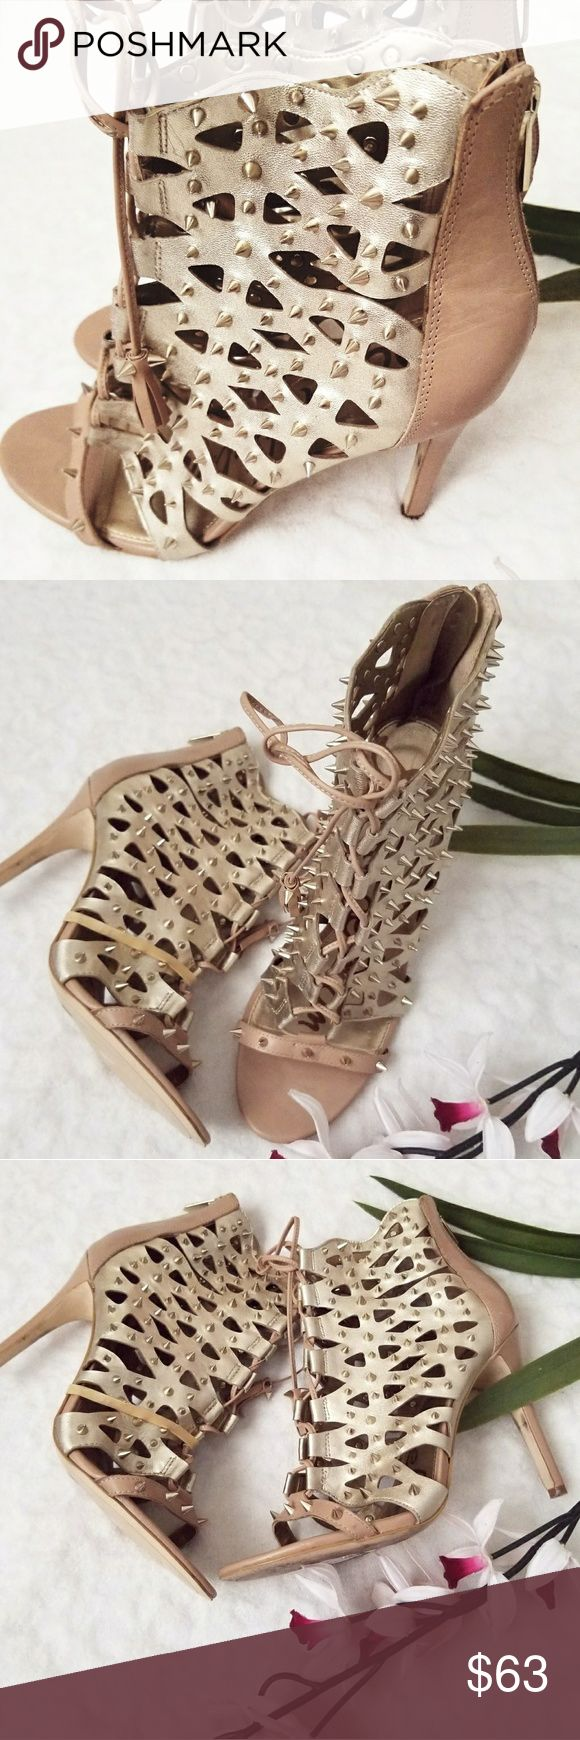 """Sam Edelman Spike Lace Up Heels Brand: Sam Edelman,  Style: Allison Spiked Cutout Heel Sandal, Color: Nude, Marerial: Leather and Suede Leather, Sizing: 8 - True to size, Condition: In excellent pre owned condition - Open toe - Contrasting leather and suede construction - Allover spike studs - Cutout detail - Ghillie lace-up front with tassels - Back zip closure - Covered stiletto heel - Approx. 4.25"""" heel Shoes Heels"""